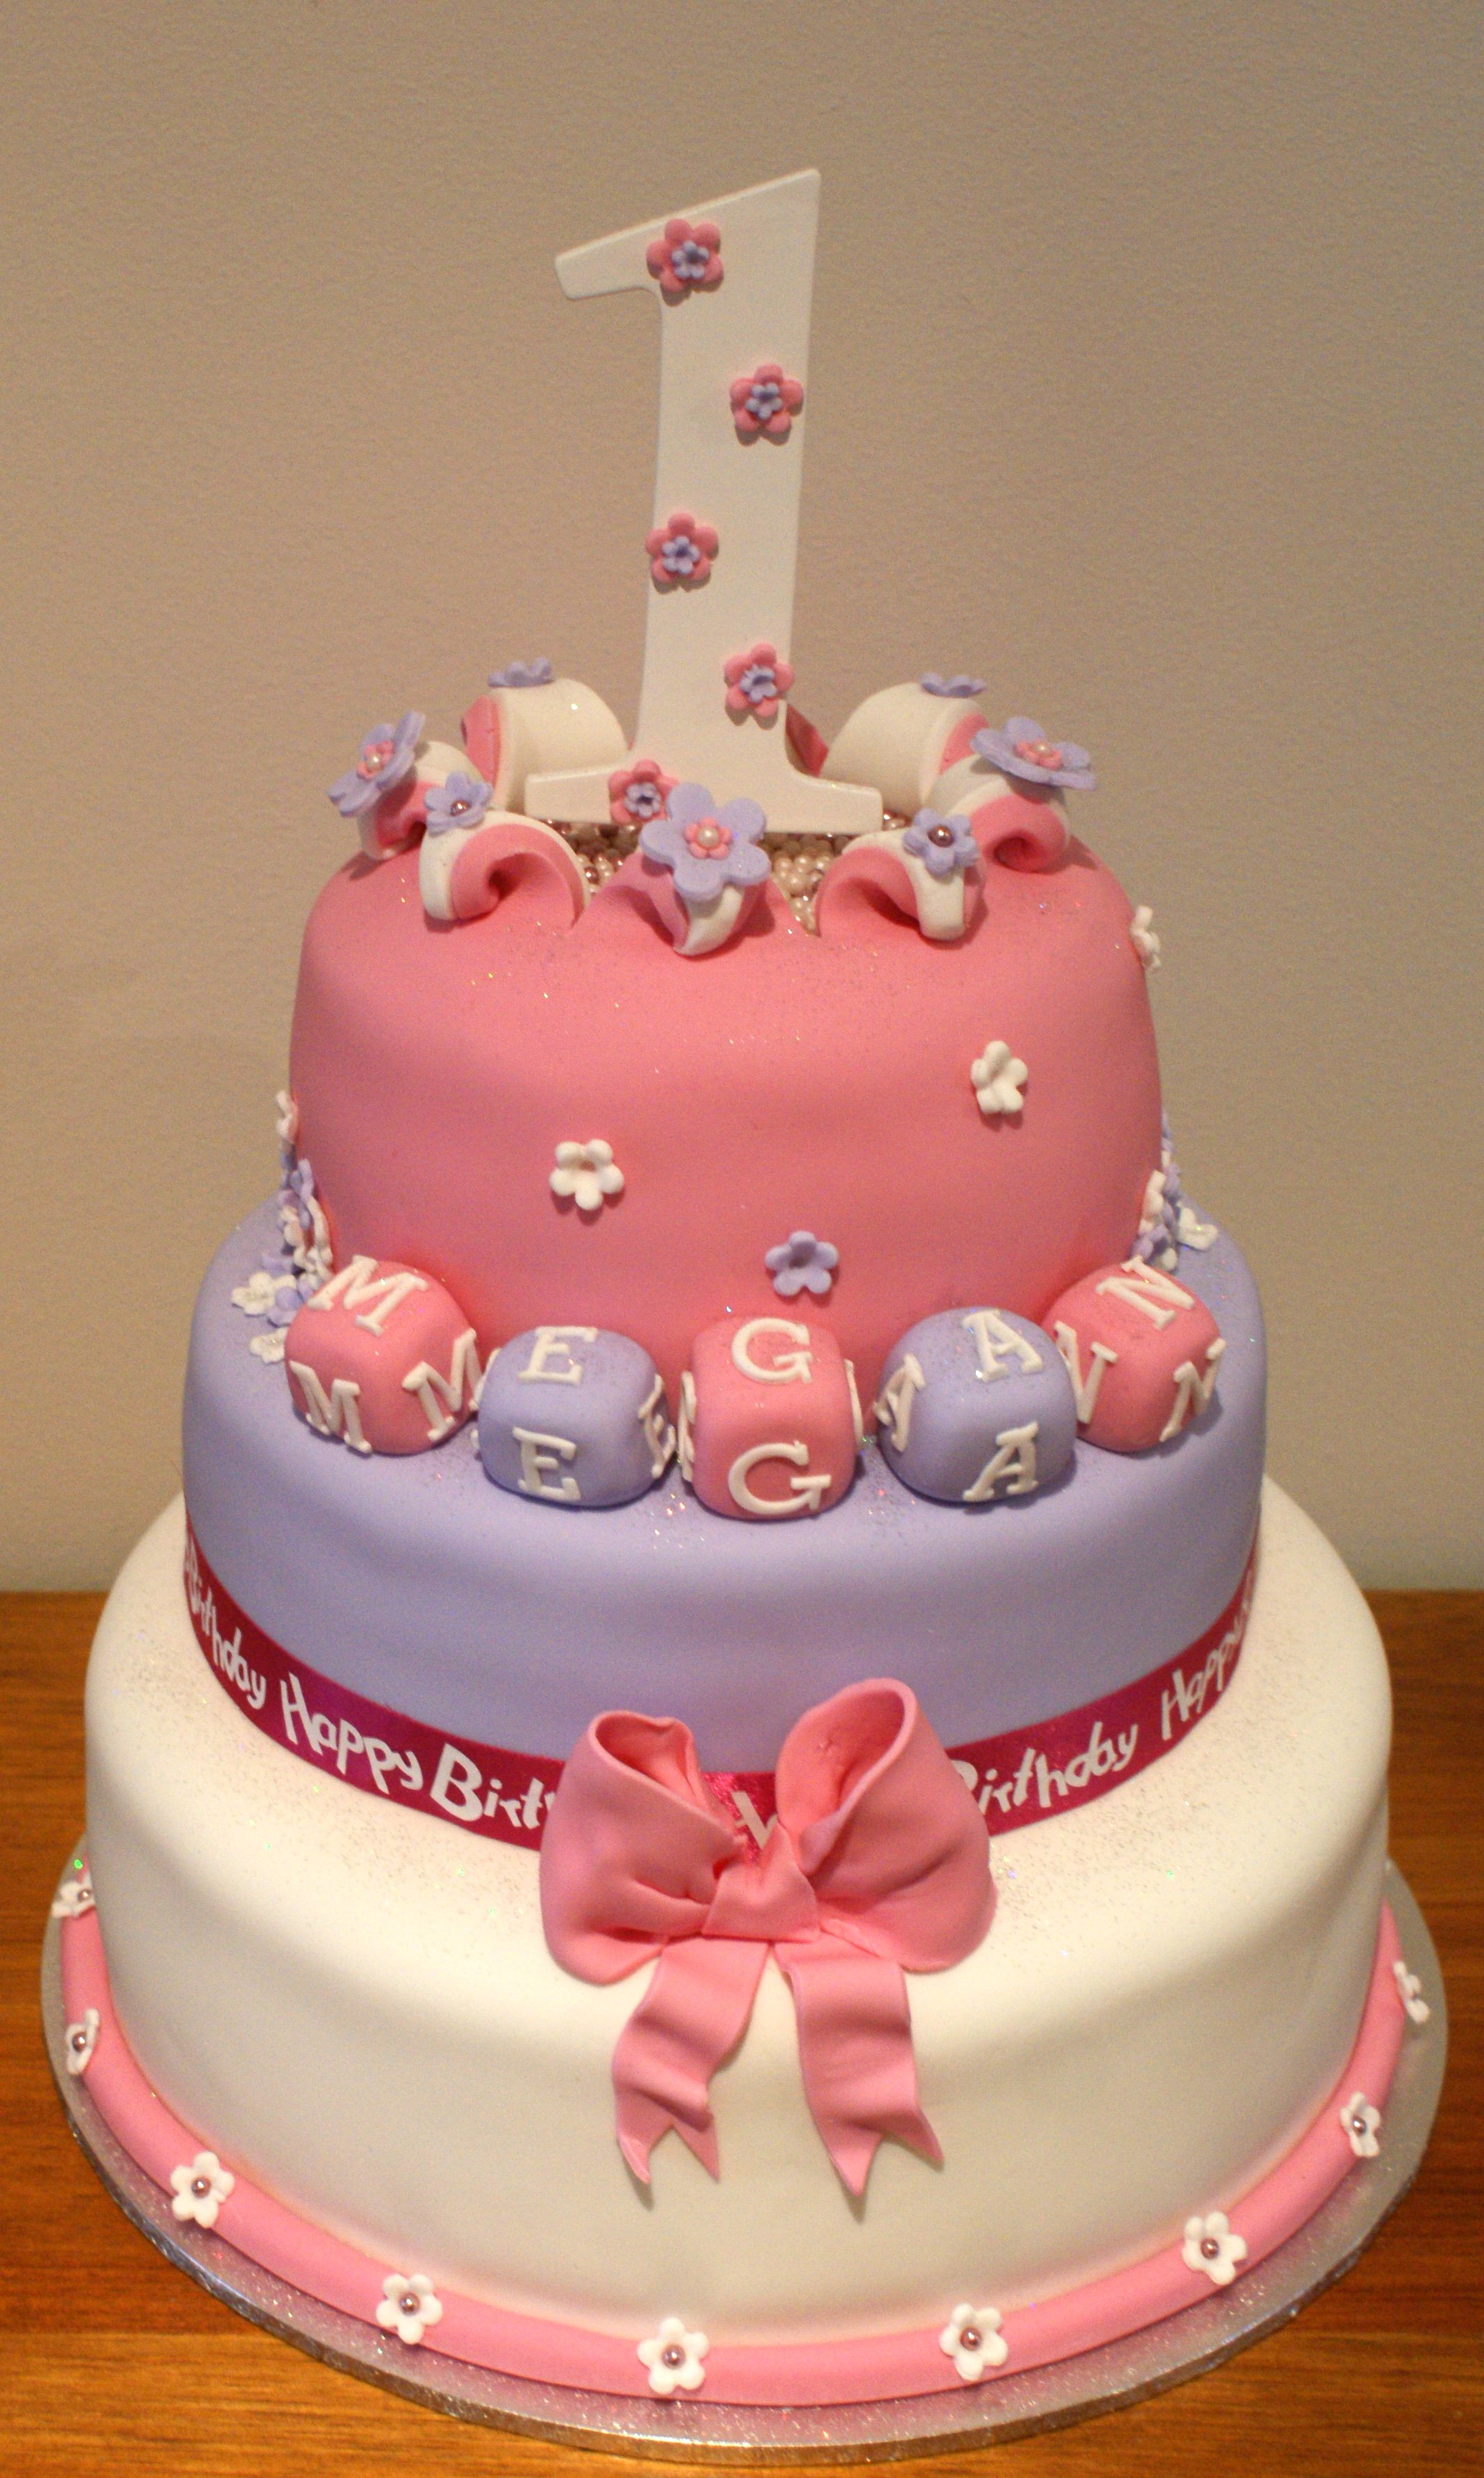 Number 1 Birthday Cake Girls 3 Tier Birthday Cake for a Little